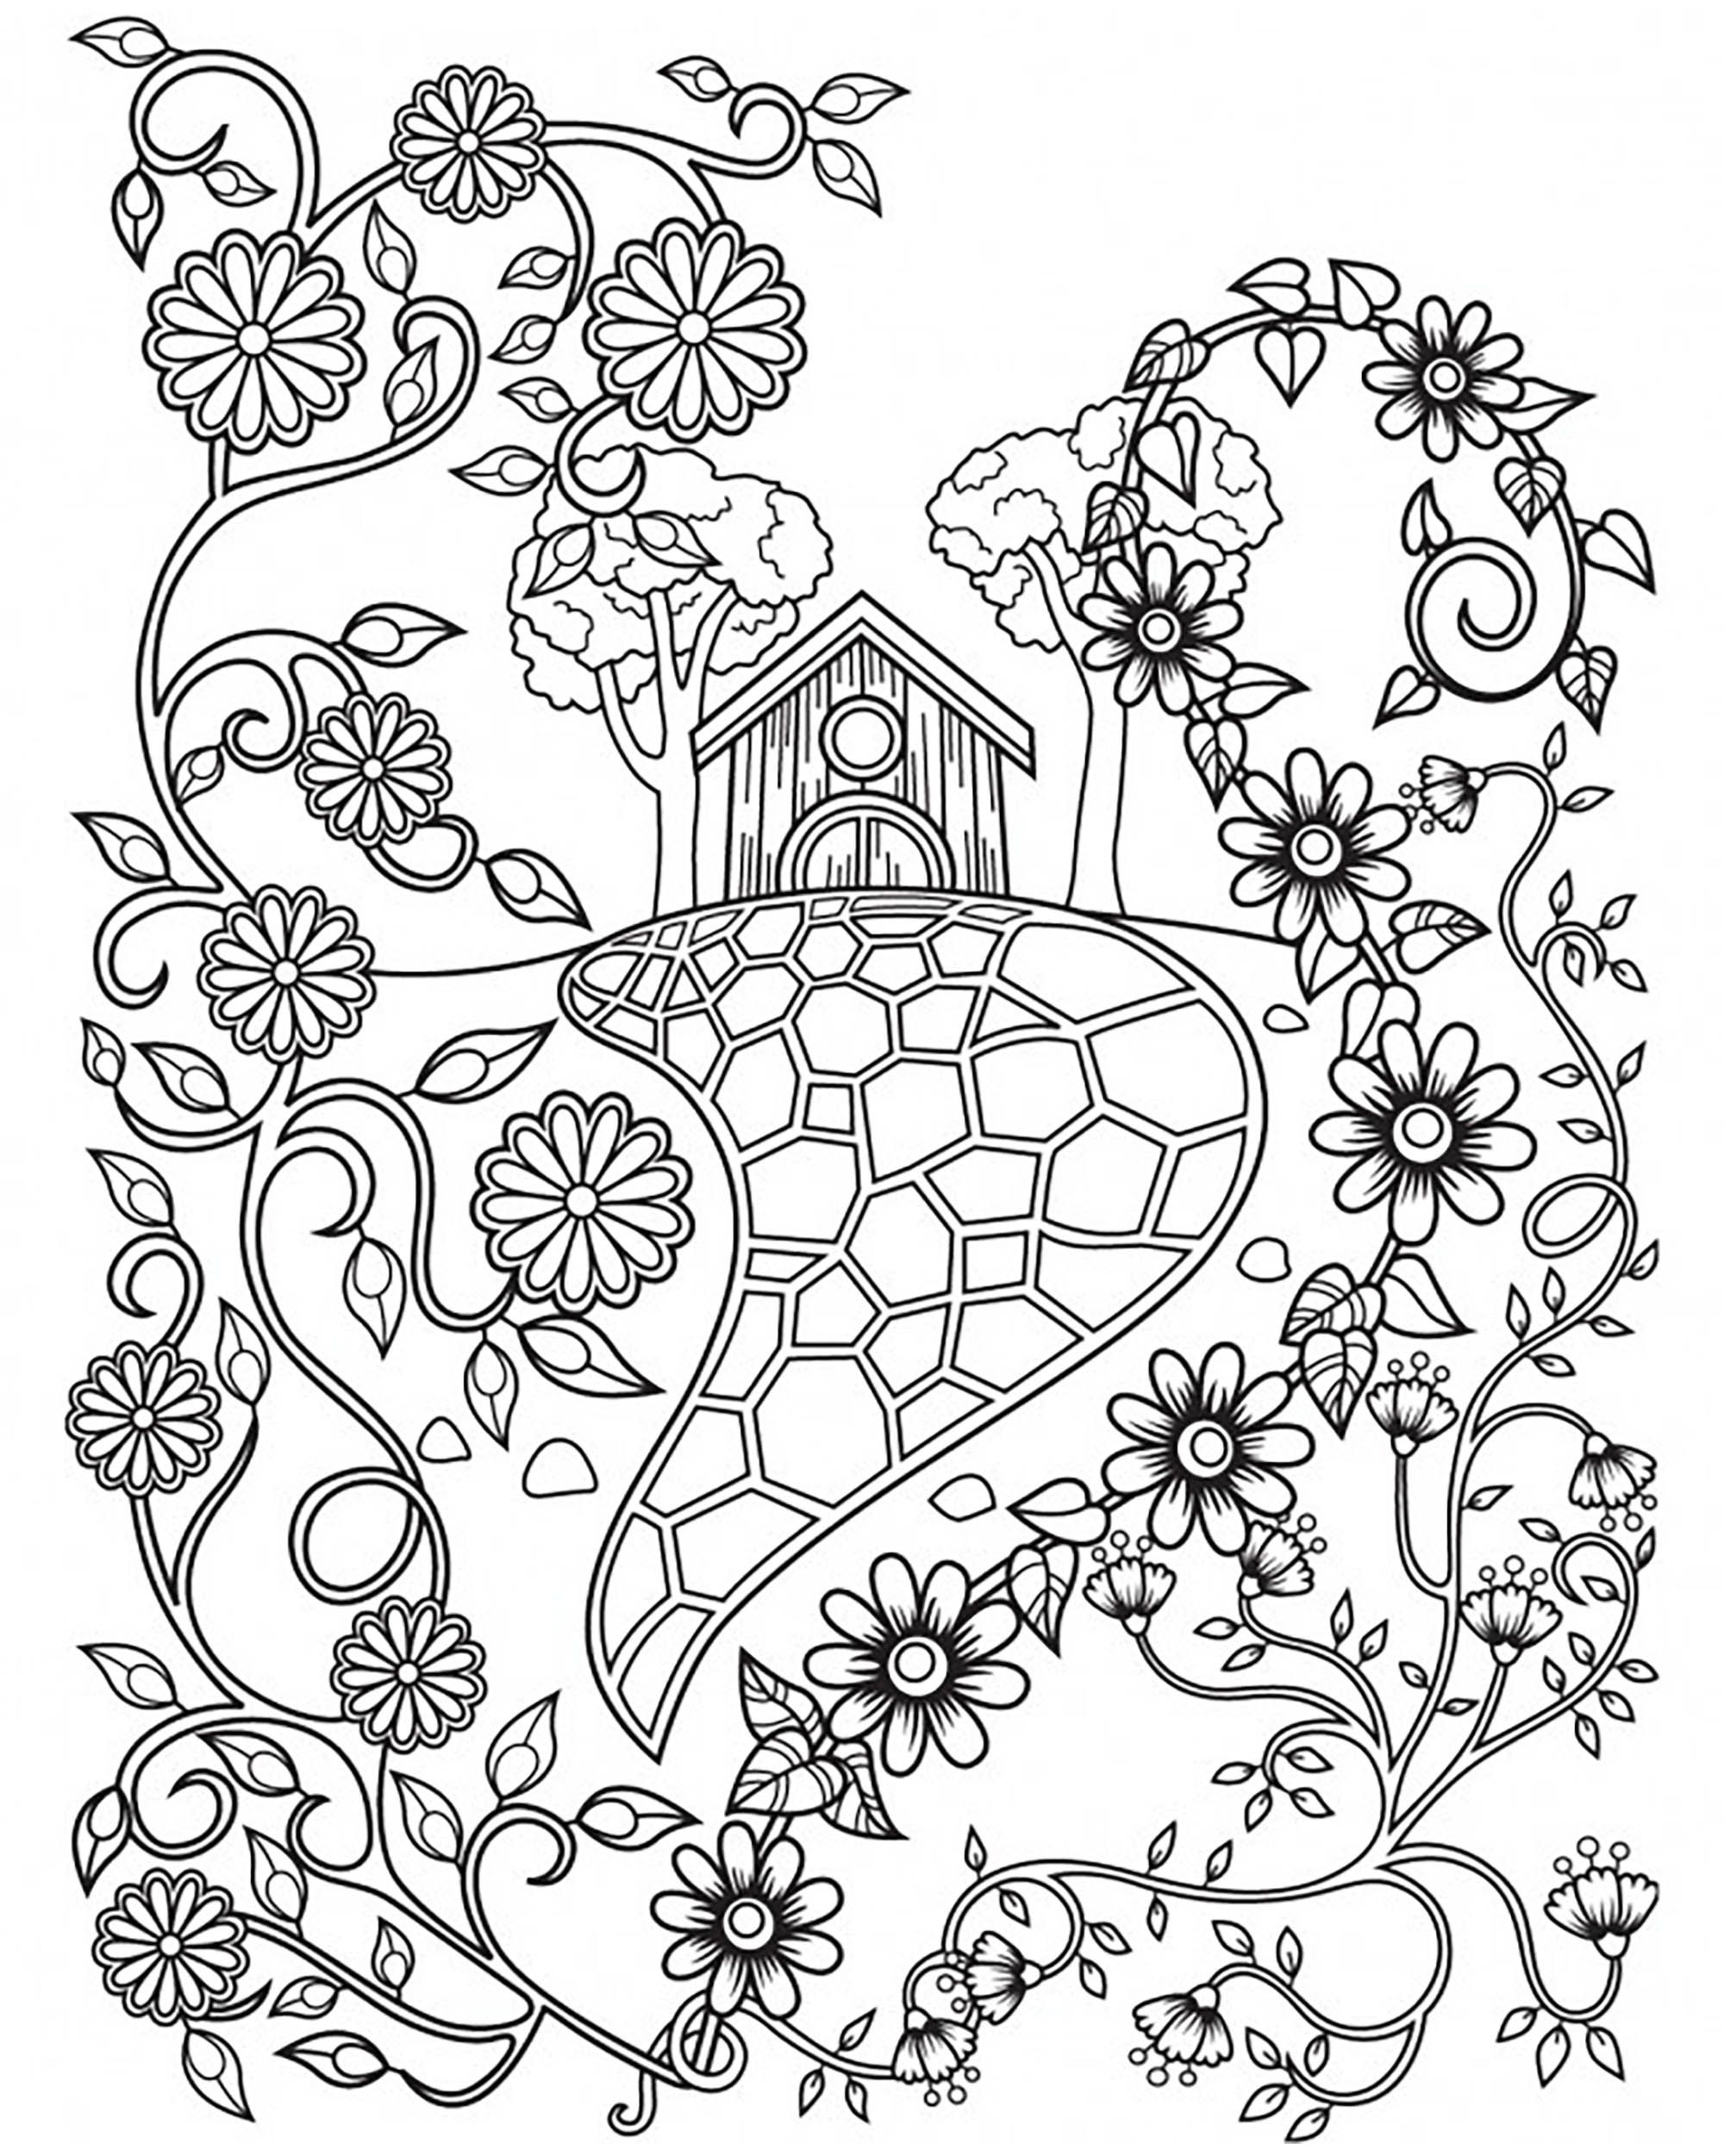 Illustration Inspired By Some Fairy Tales With A House Nearly Hidden Behind Flowers Field Coloring Page Offered Cinthia